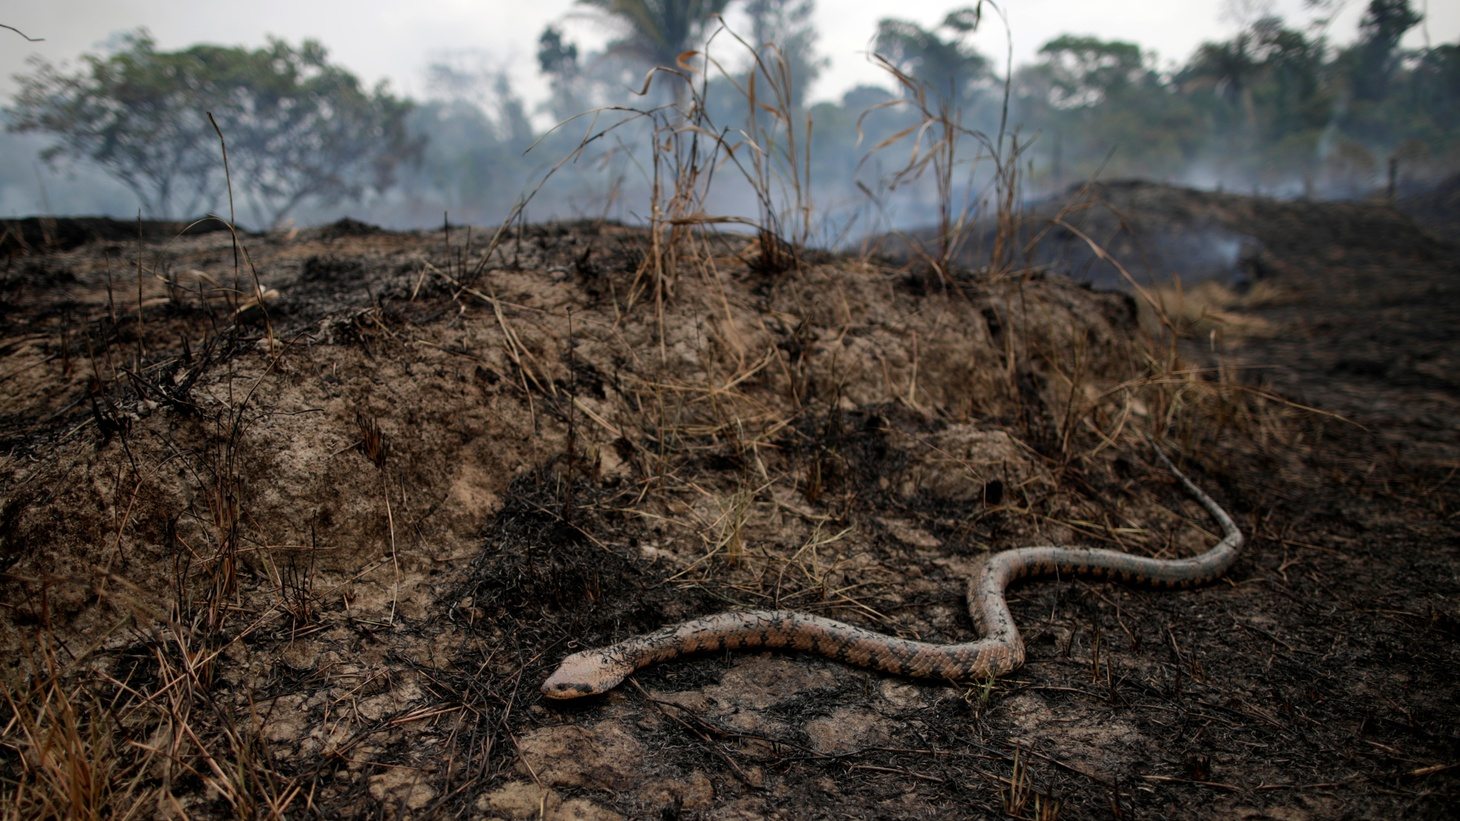 A snake is seen while a tract of the Amazon jungle burns as it is cleared by loggers and farmers in Porto Velho, Brazil. August 24, 2019.